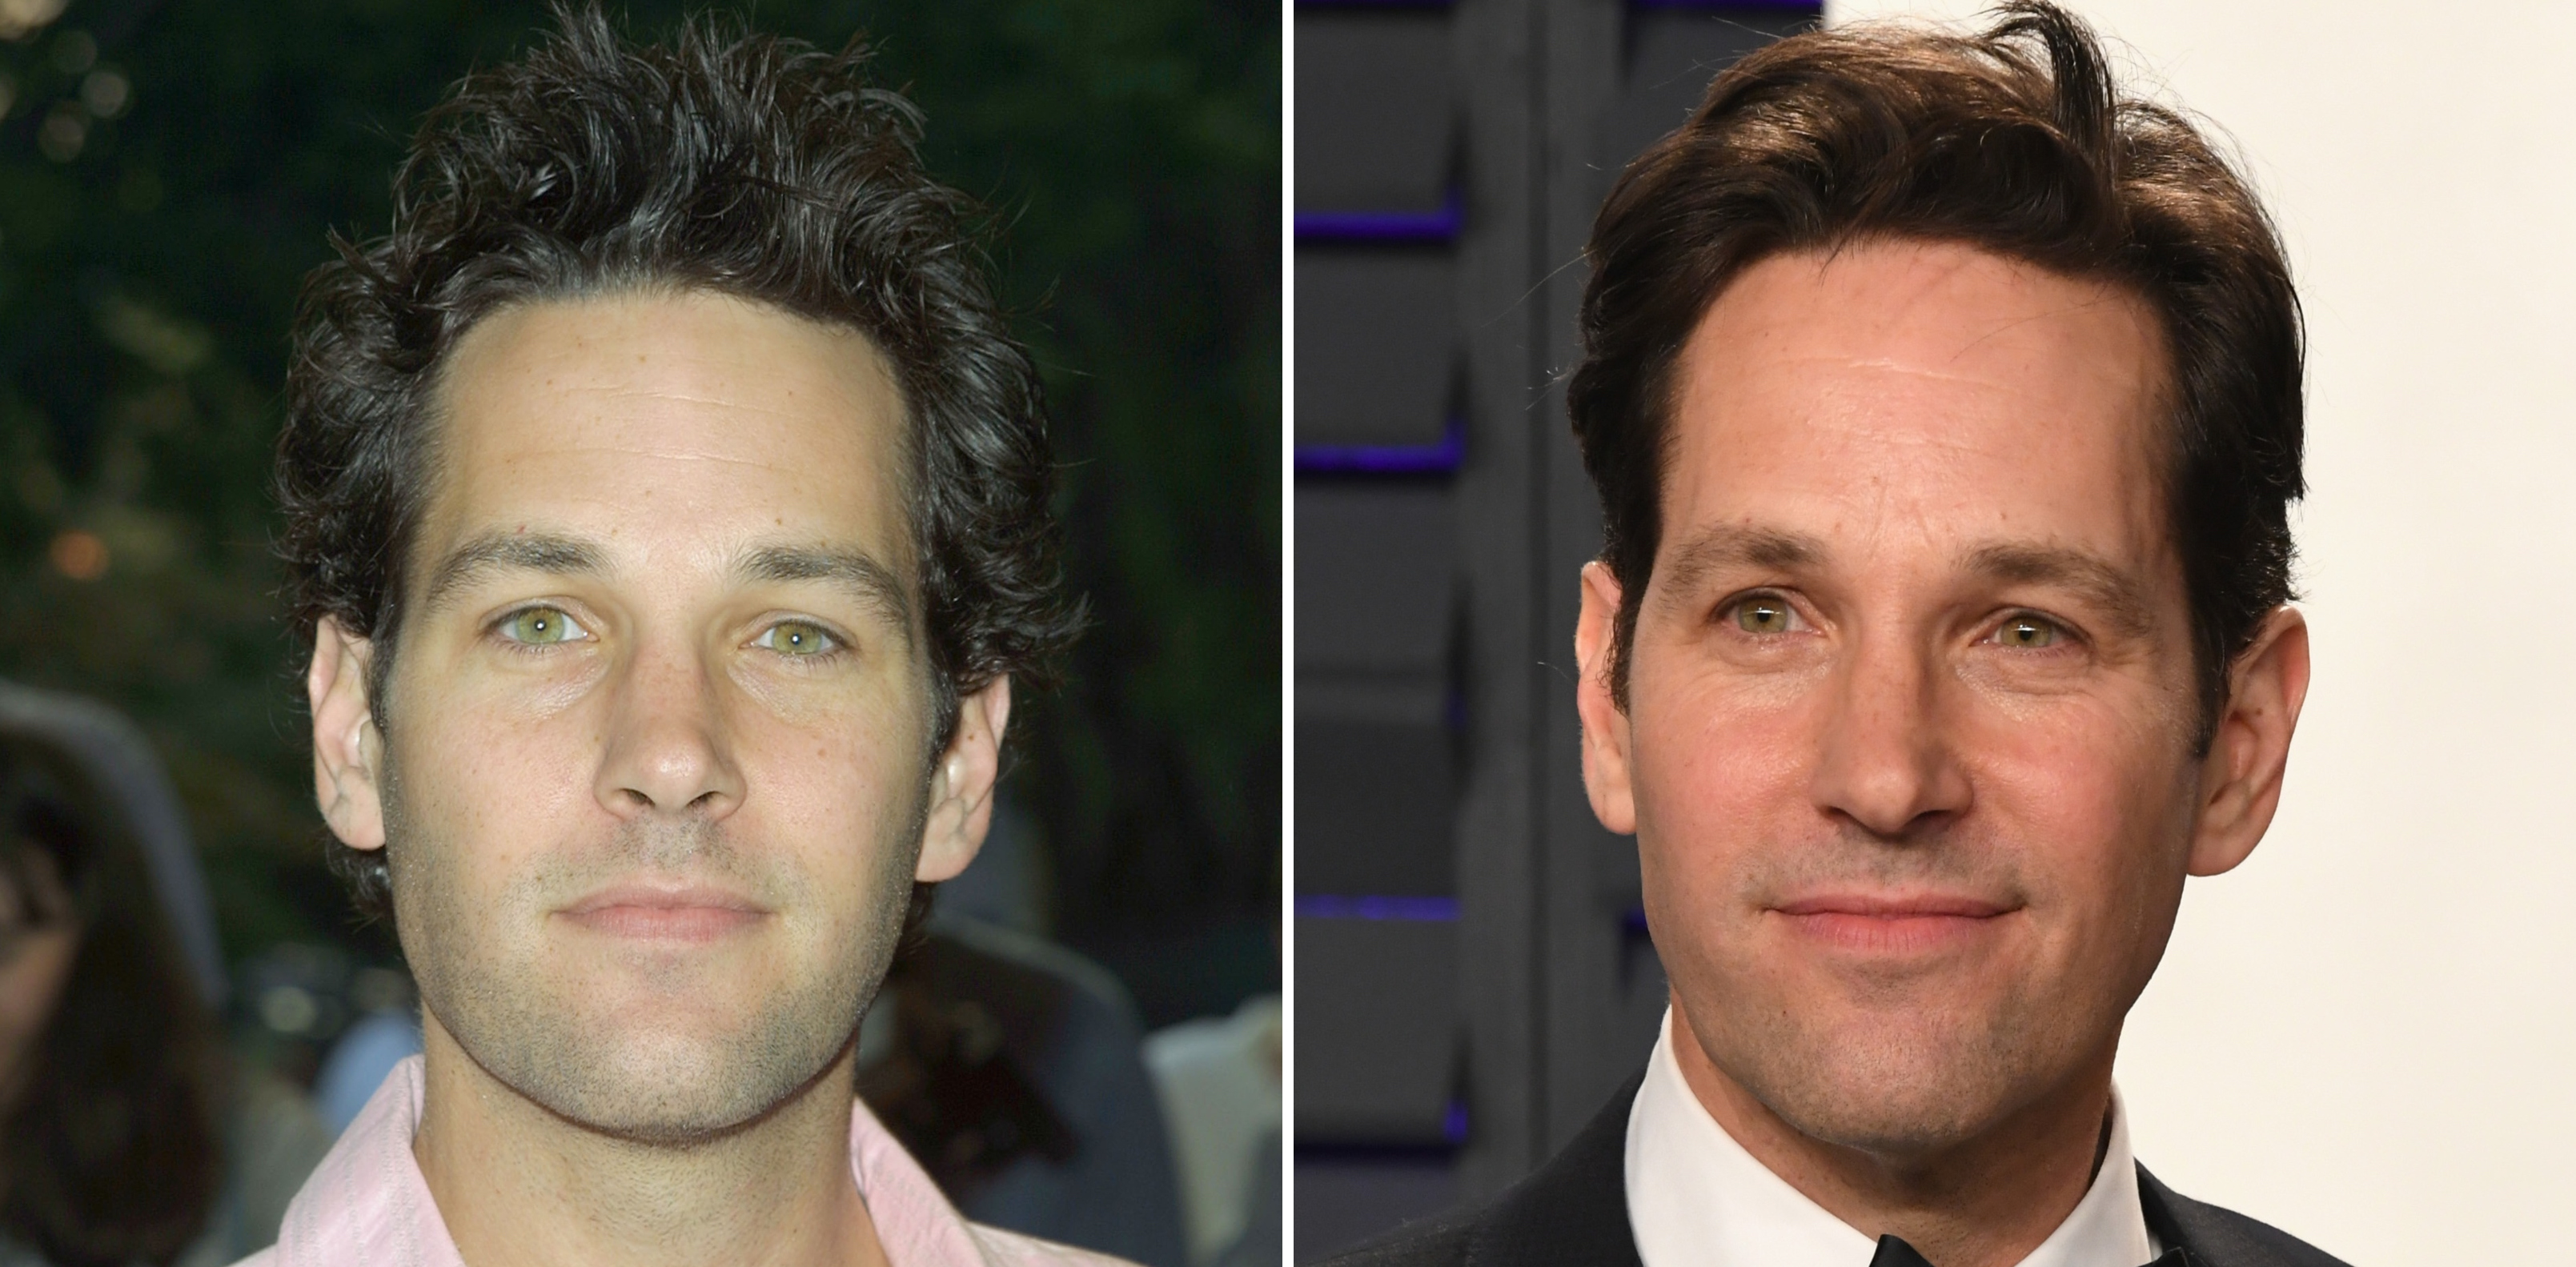 Paul Rudd Reveals The Secret To Looking Young And Never Aging